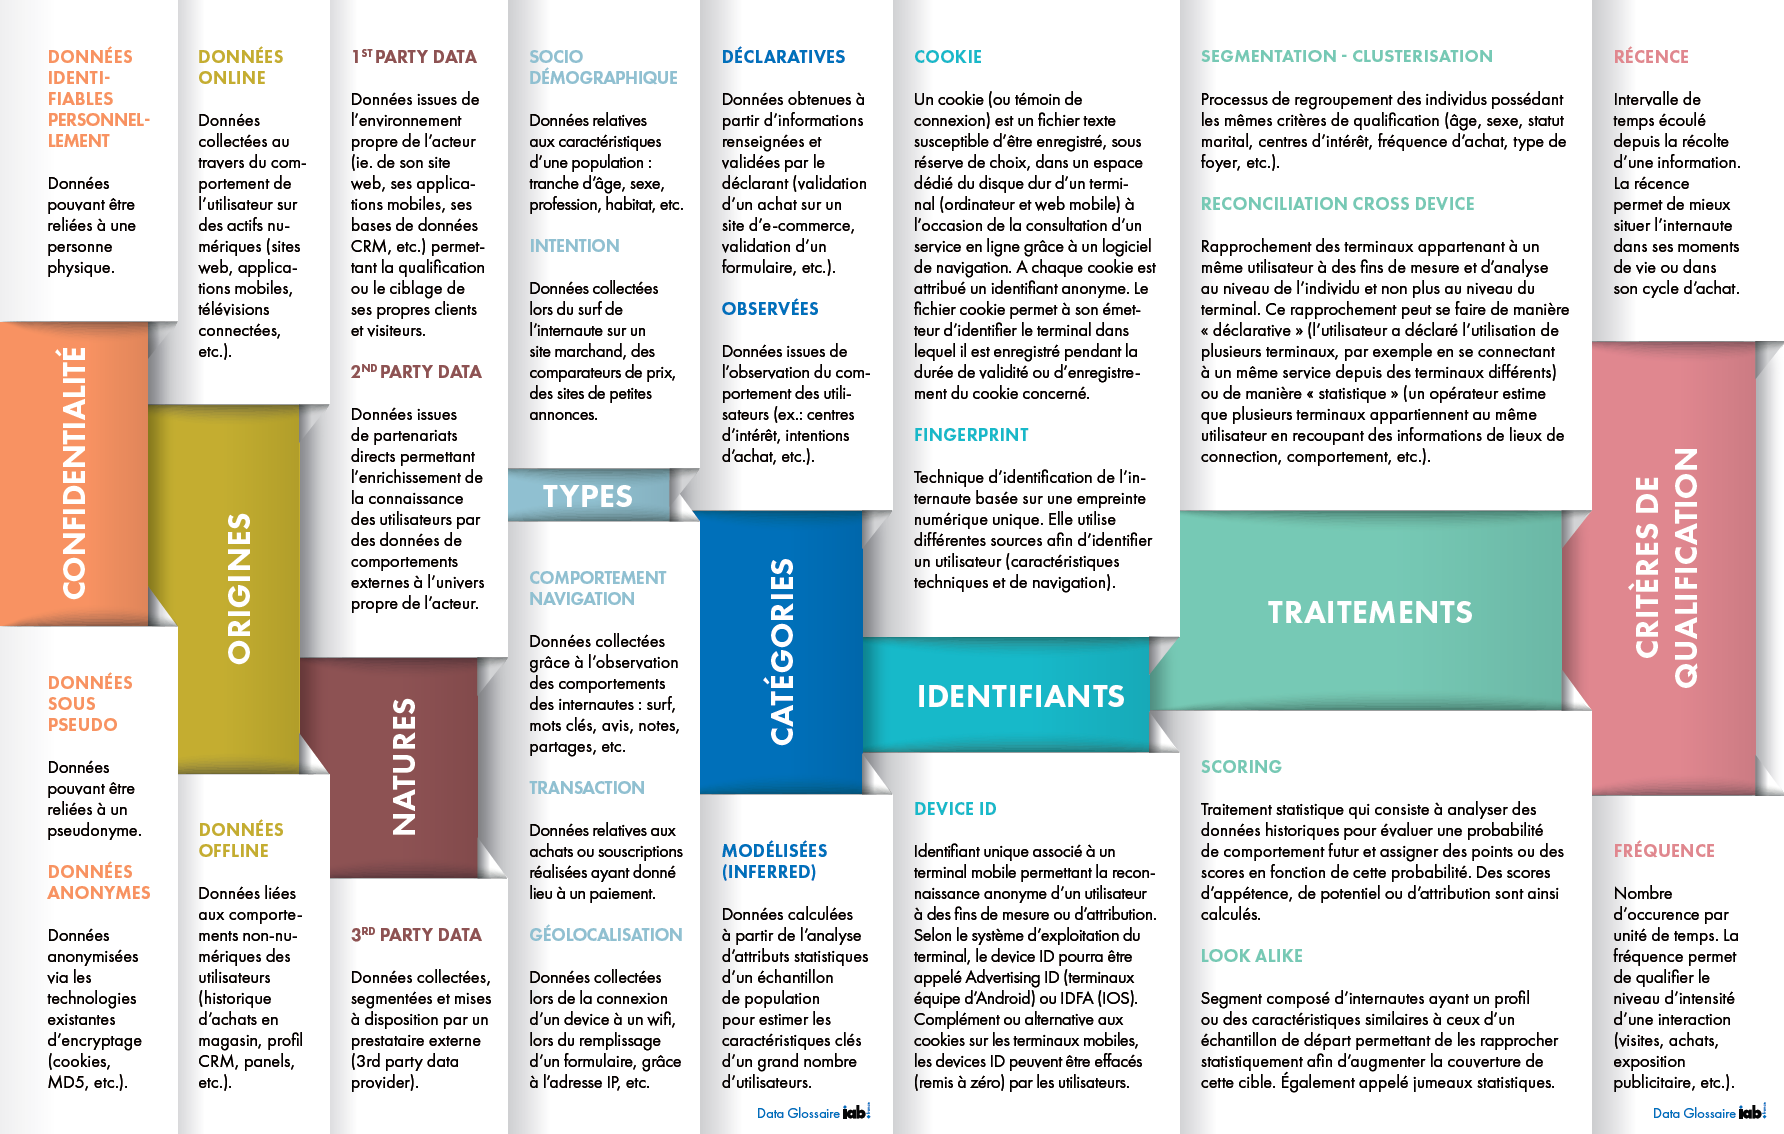 Data glossary for Programmatic campaign